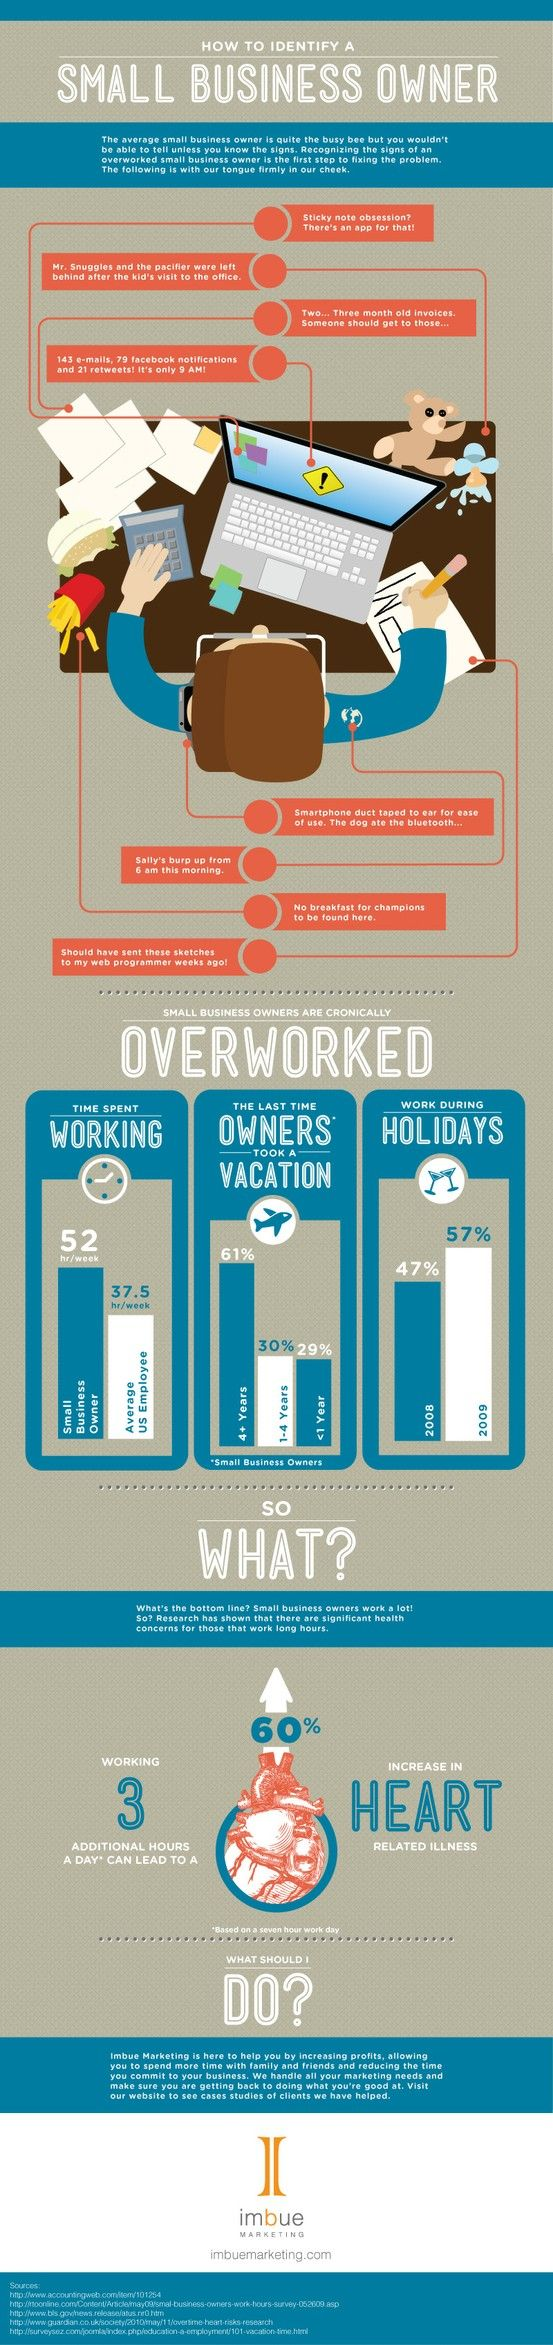 Are you an overworked small business owner? This infographic shares the signs of one. #smallbusiness #business #owner